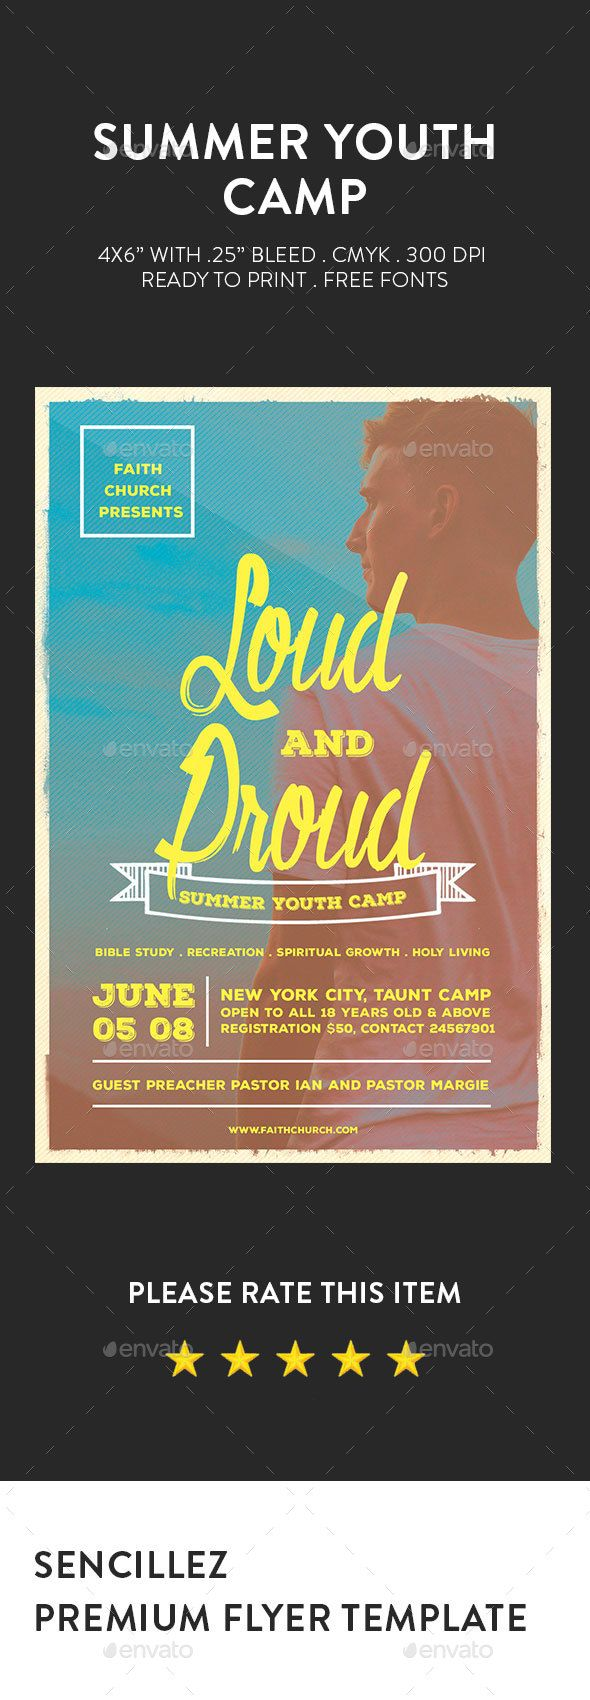 Summer Youth Camp Flyer Summer Youth Camp Flyer best suited for church camp, camps, or any event or session.This item also has one PSD file, but you can edit/change the style with just one click.DetailsFlyers size is 46 with .25 bleeds, CMYK 300DPI Layers are